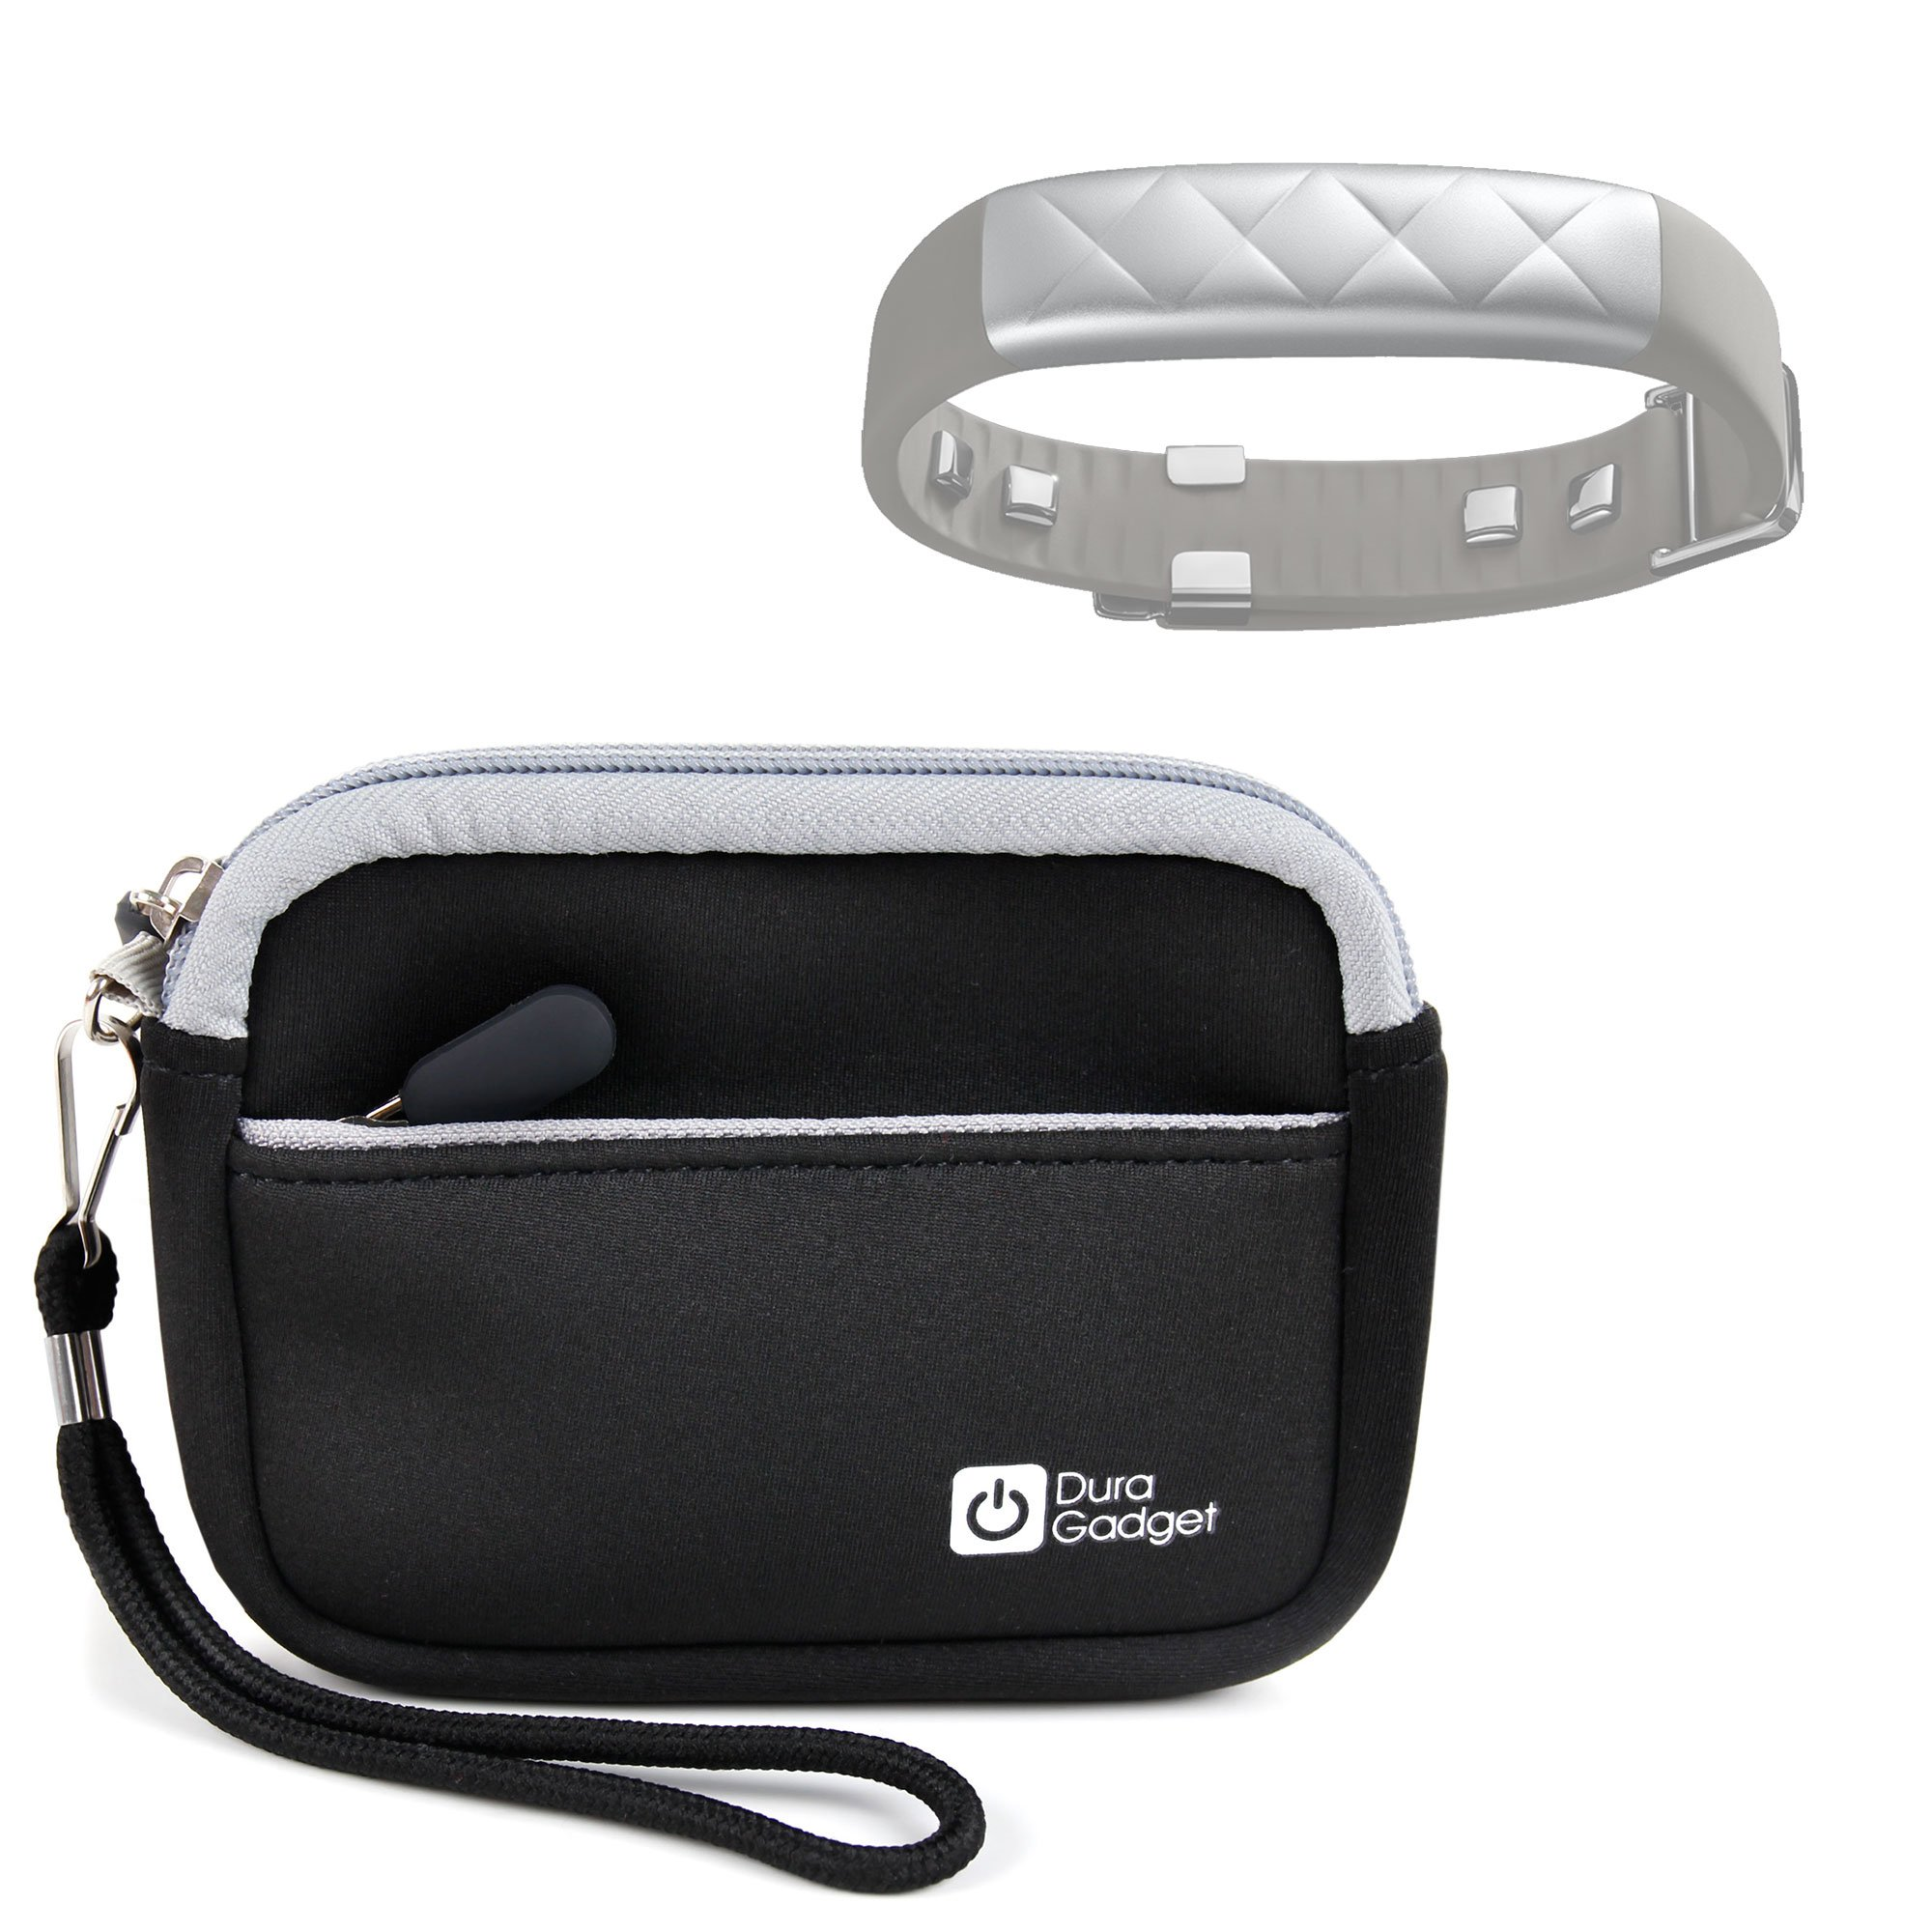 DURAGADGET Premium Quality Protective Neoprene Travel Case/Pouch with Handy Wrist Strap & Additional Storage - Compatible with The Jawbone UP2 and UP3 Wearables